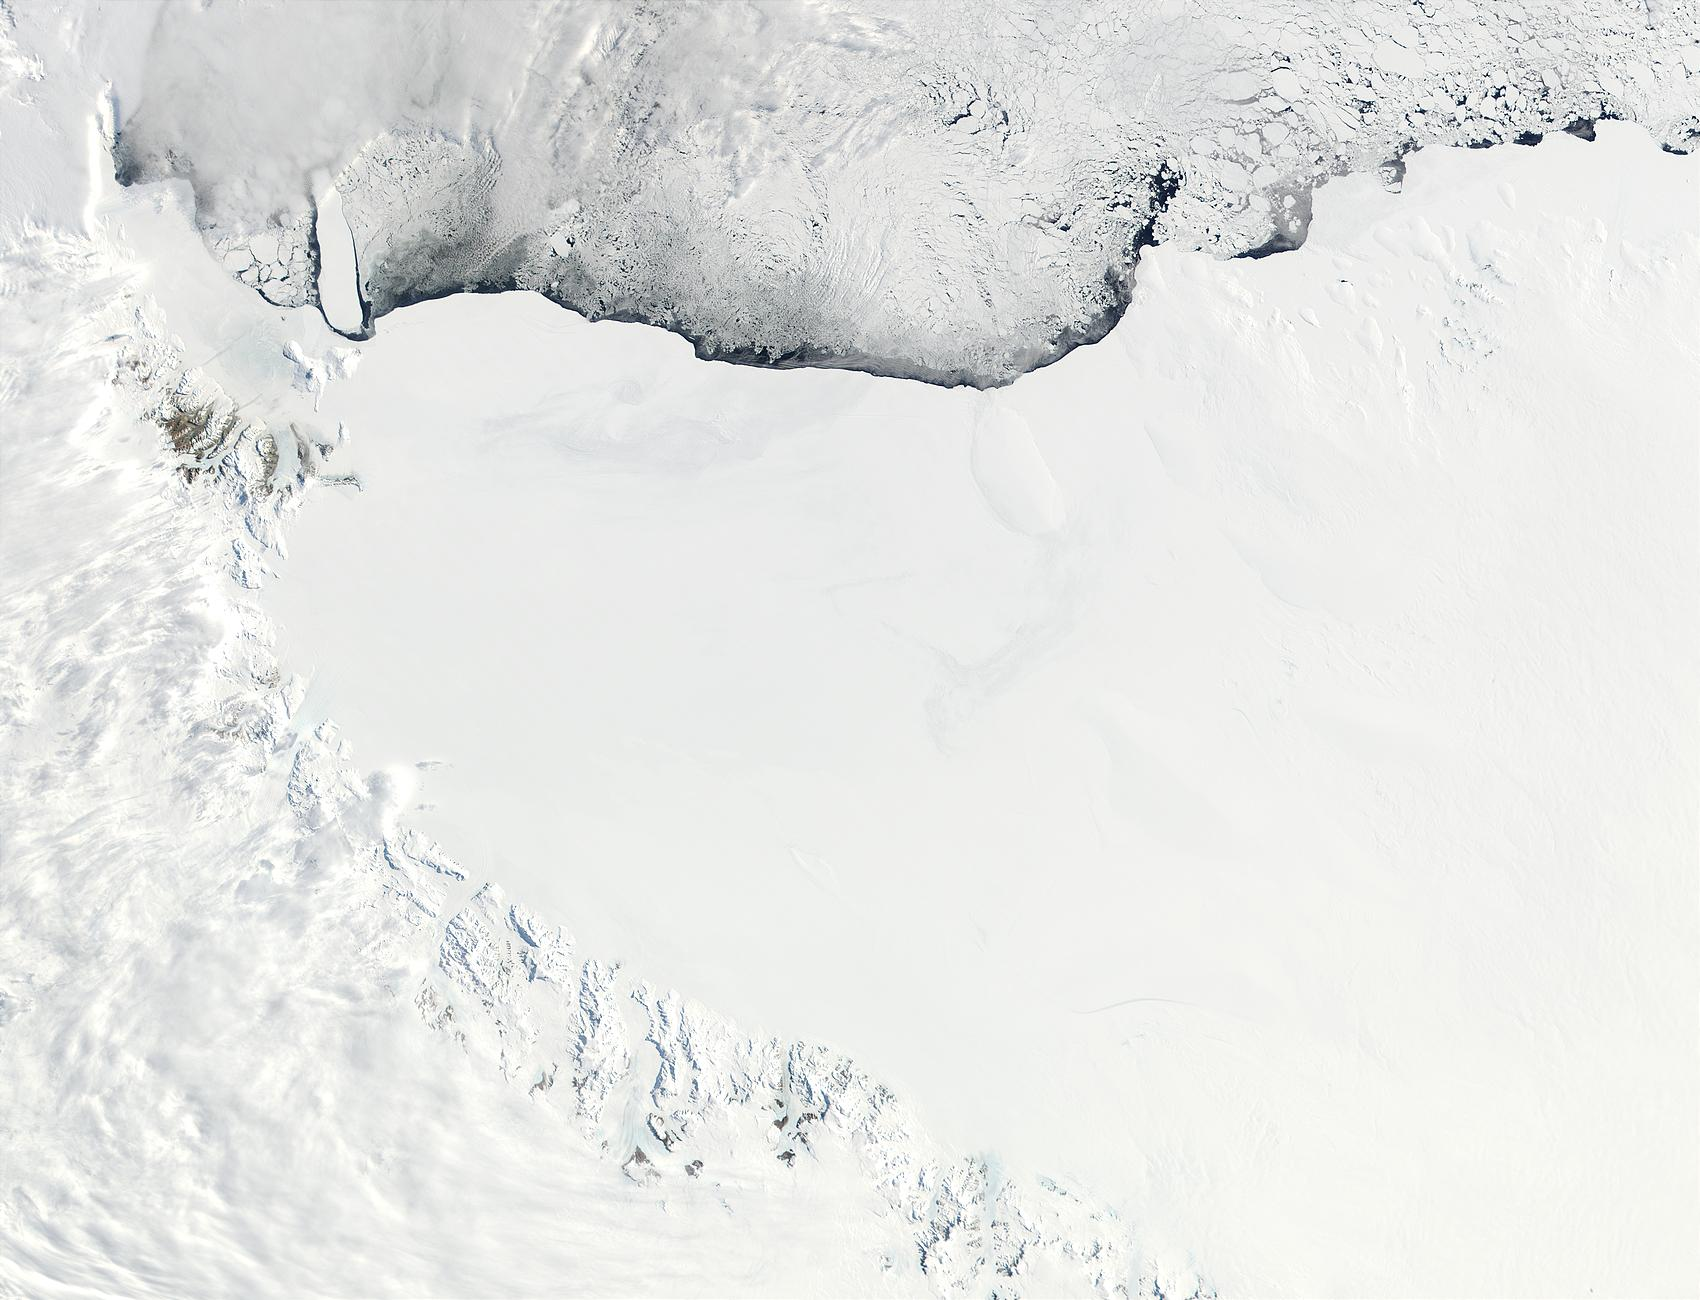 Ross Ice Shelf and Saunders Coast, Antarctica - related image preview